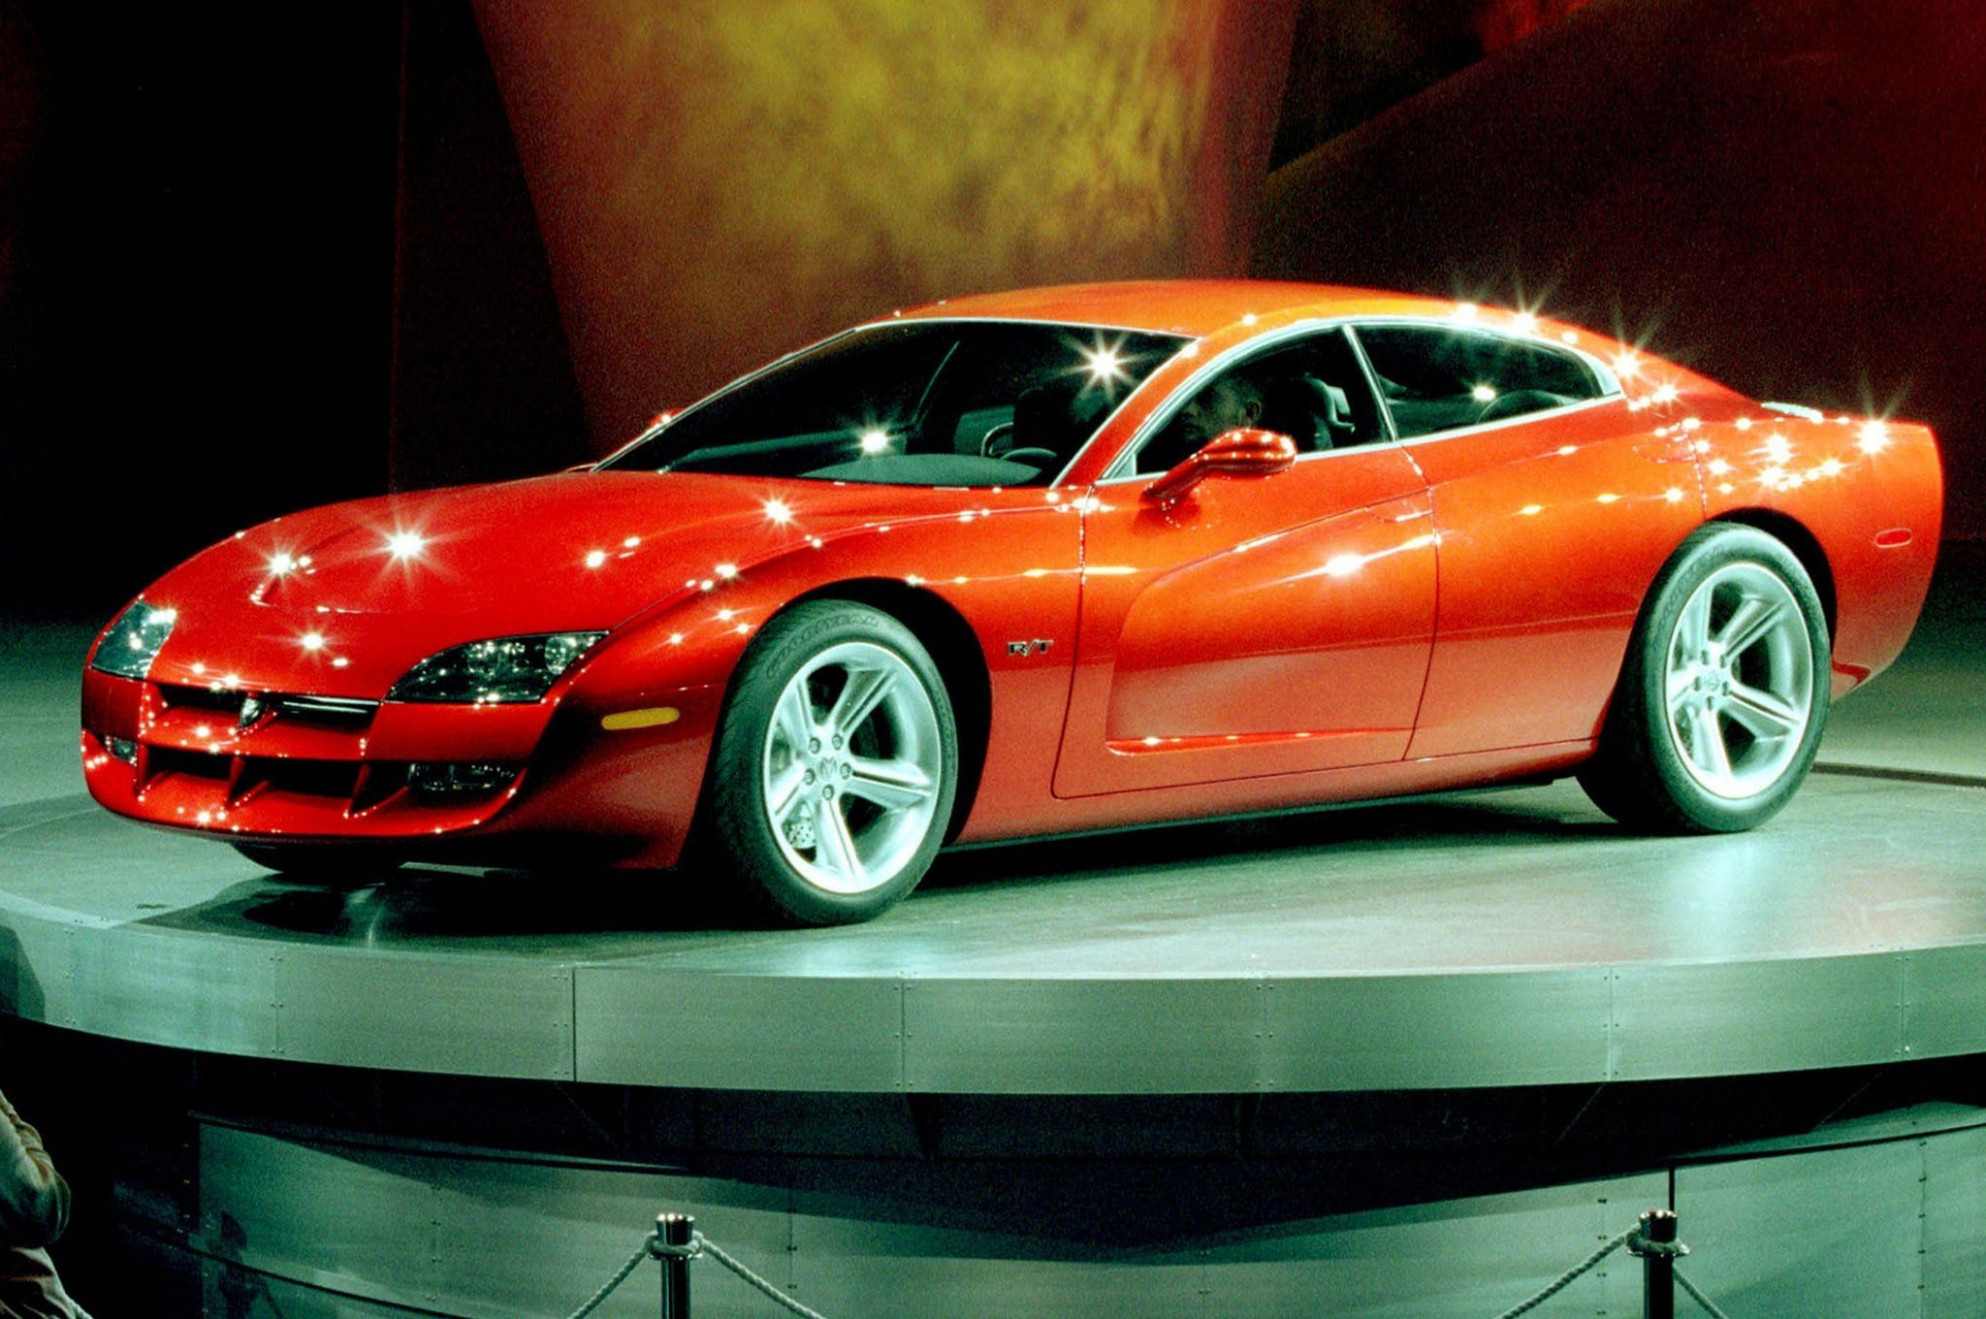 4 Audi S4 Engine (With images) | Dodge charger, Concept cars, Dodge | 2020 Dodge Stratus